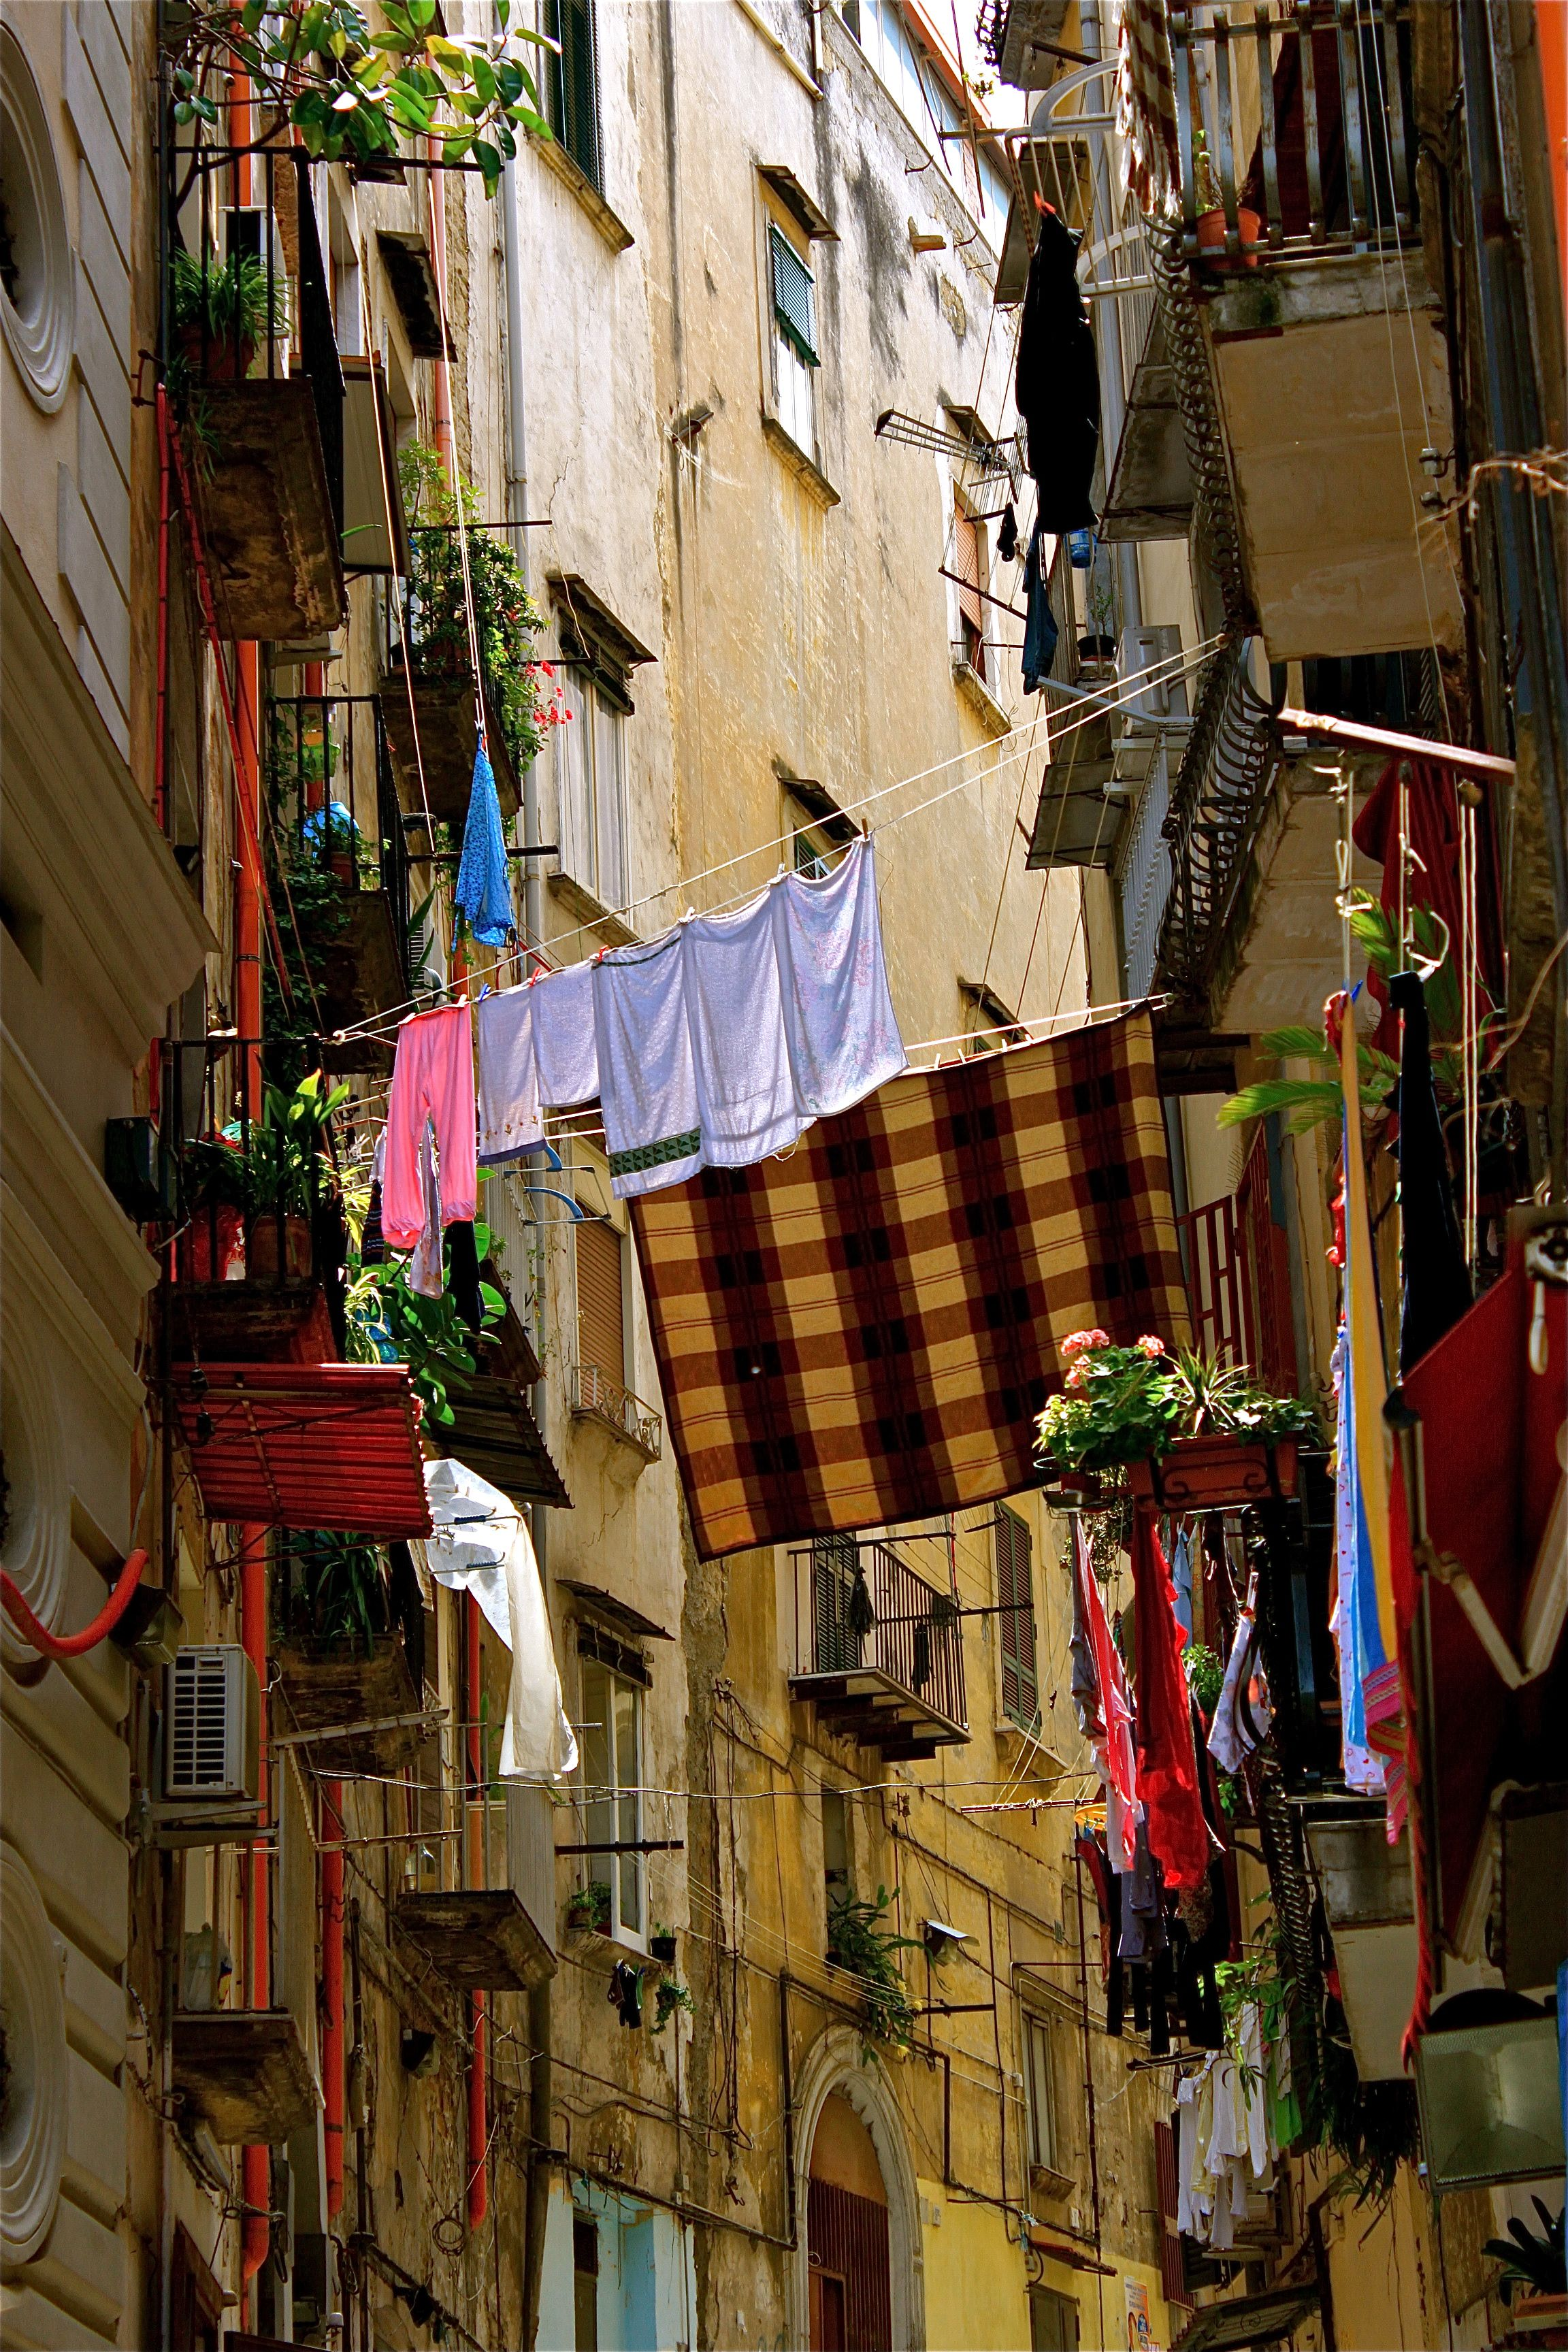 Napoli Is Colorful Laundry And Gardens Even On The Smallest